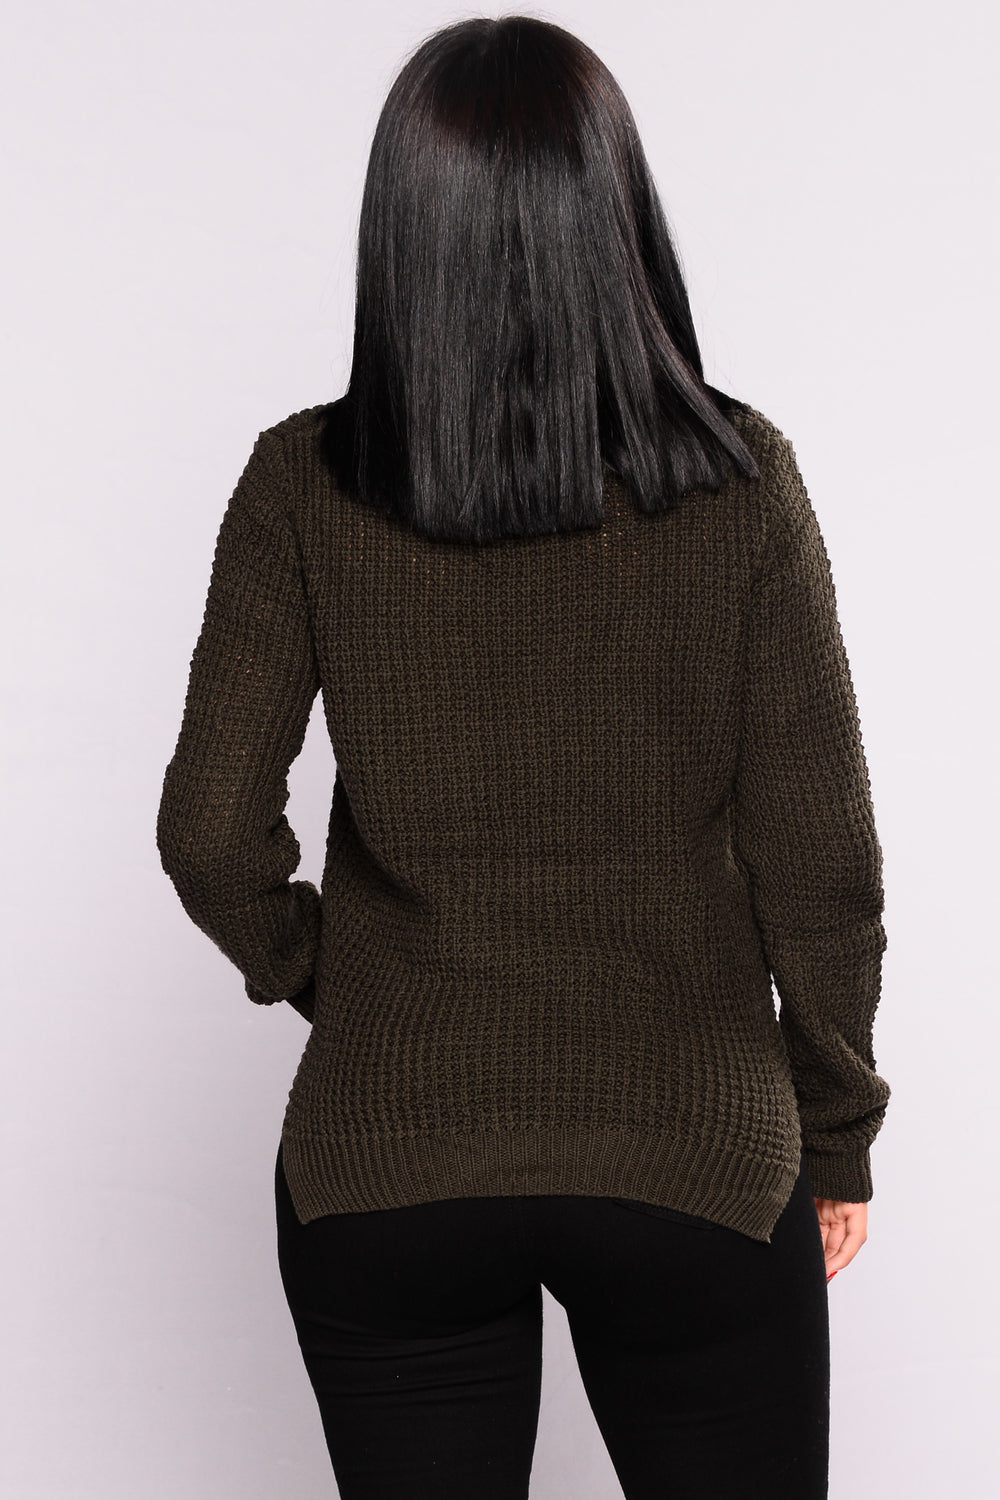 Luisa Lace Up Sweater - Olive